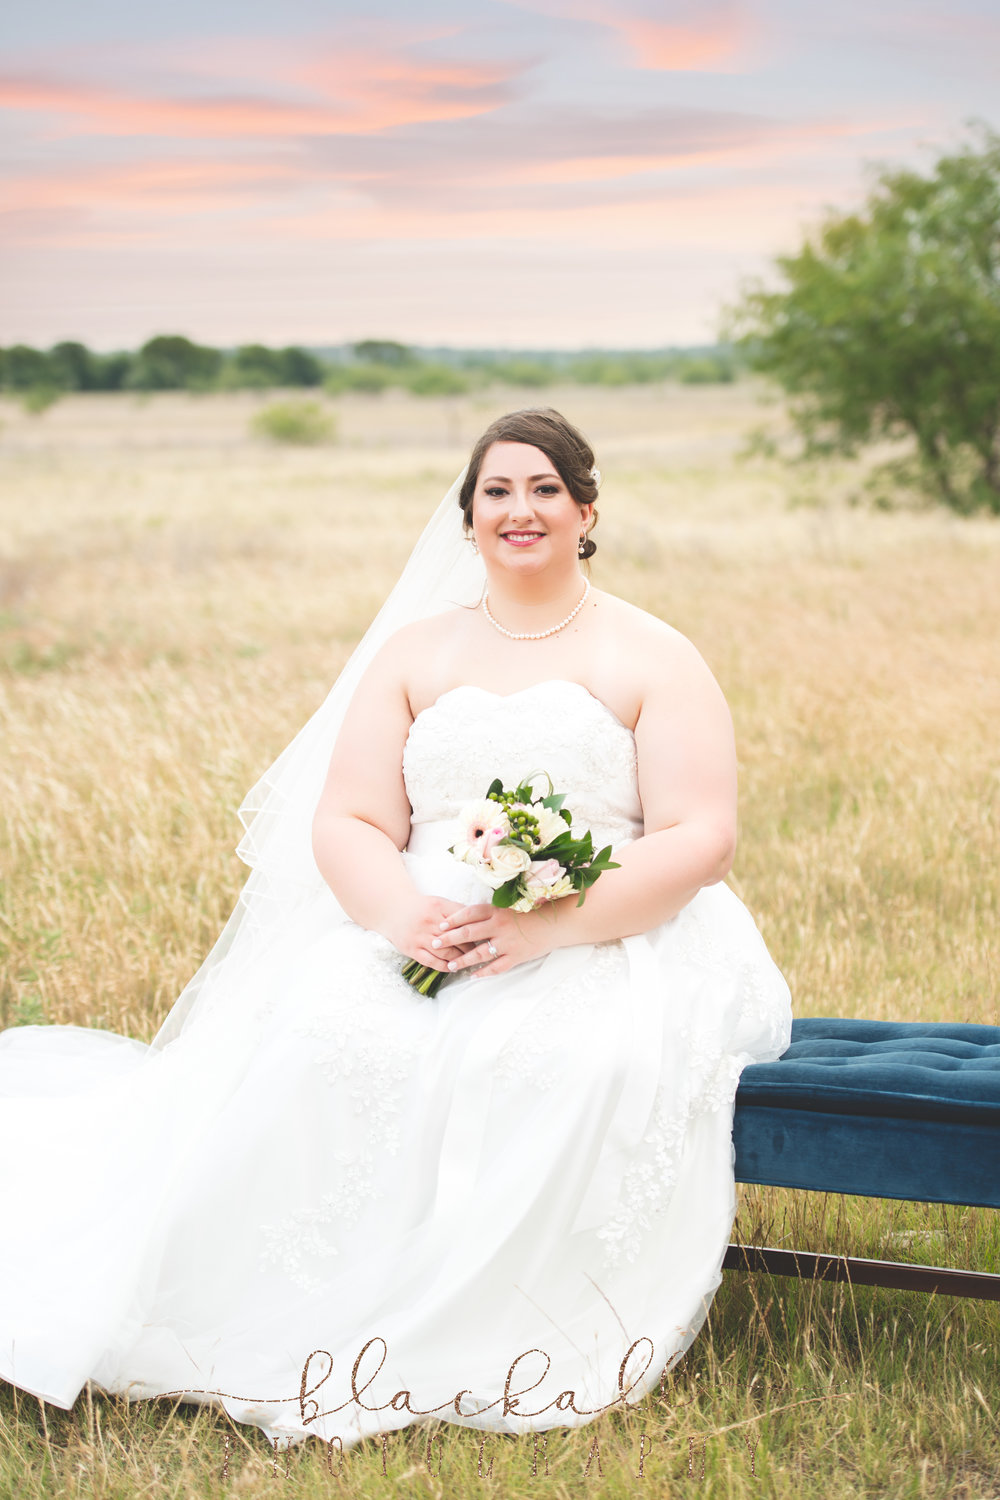 BRIDALS_BlackallPhotography_6.JPG